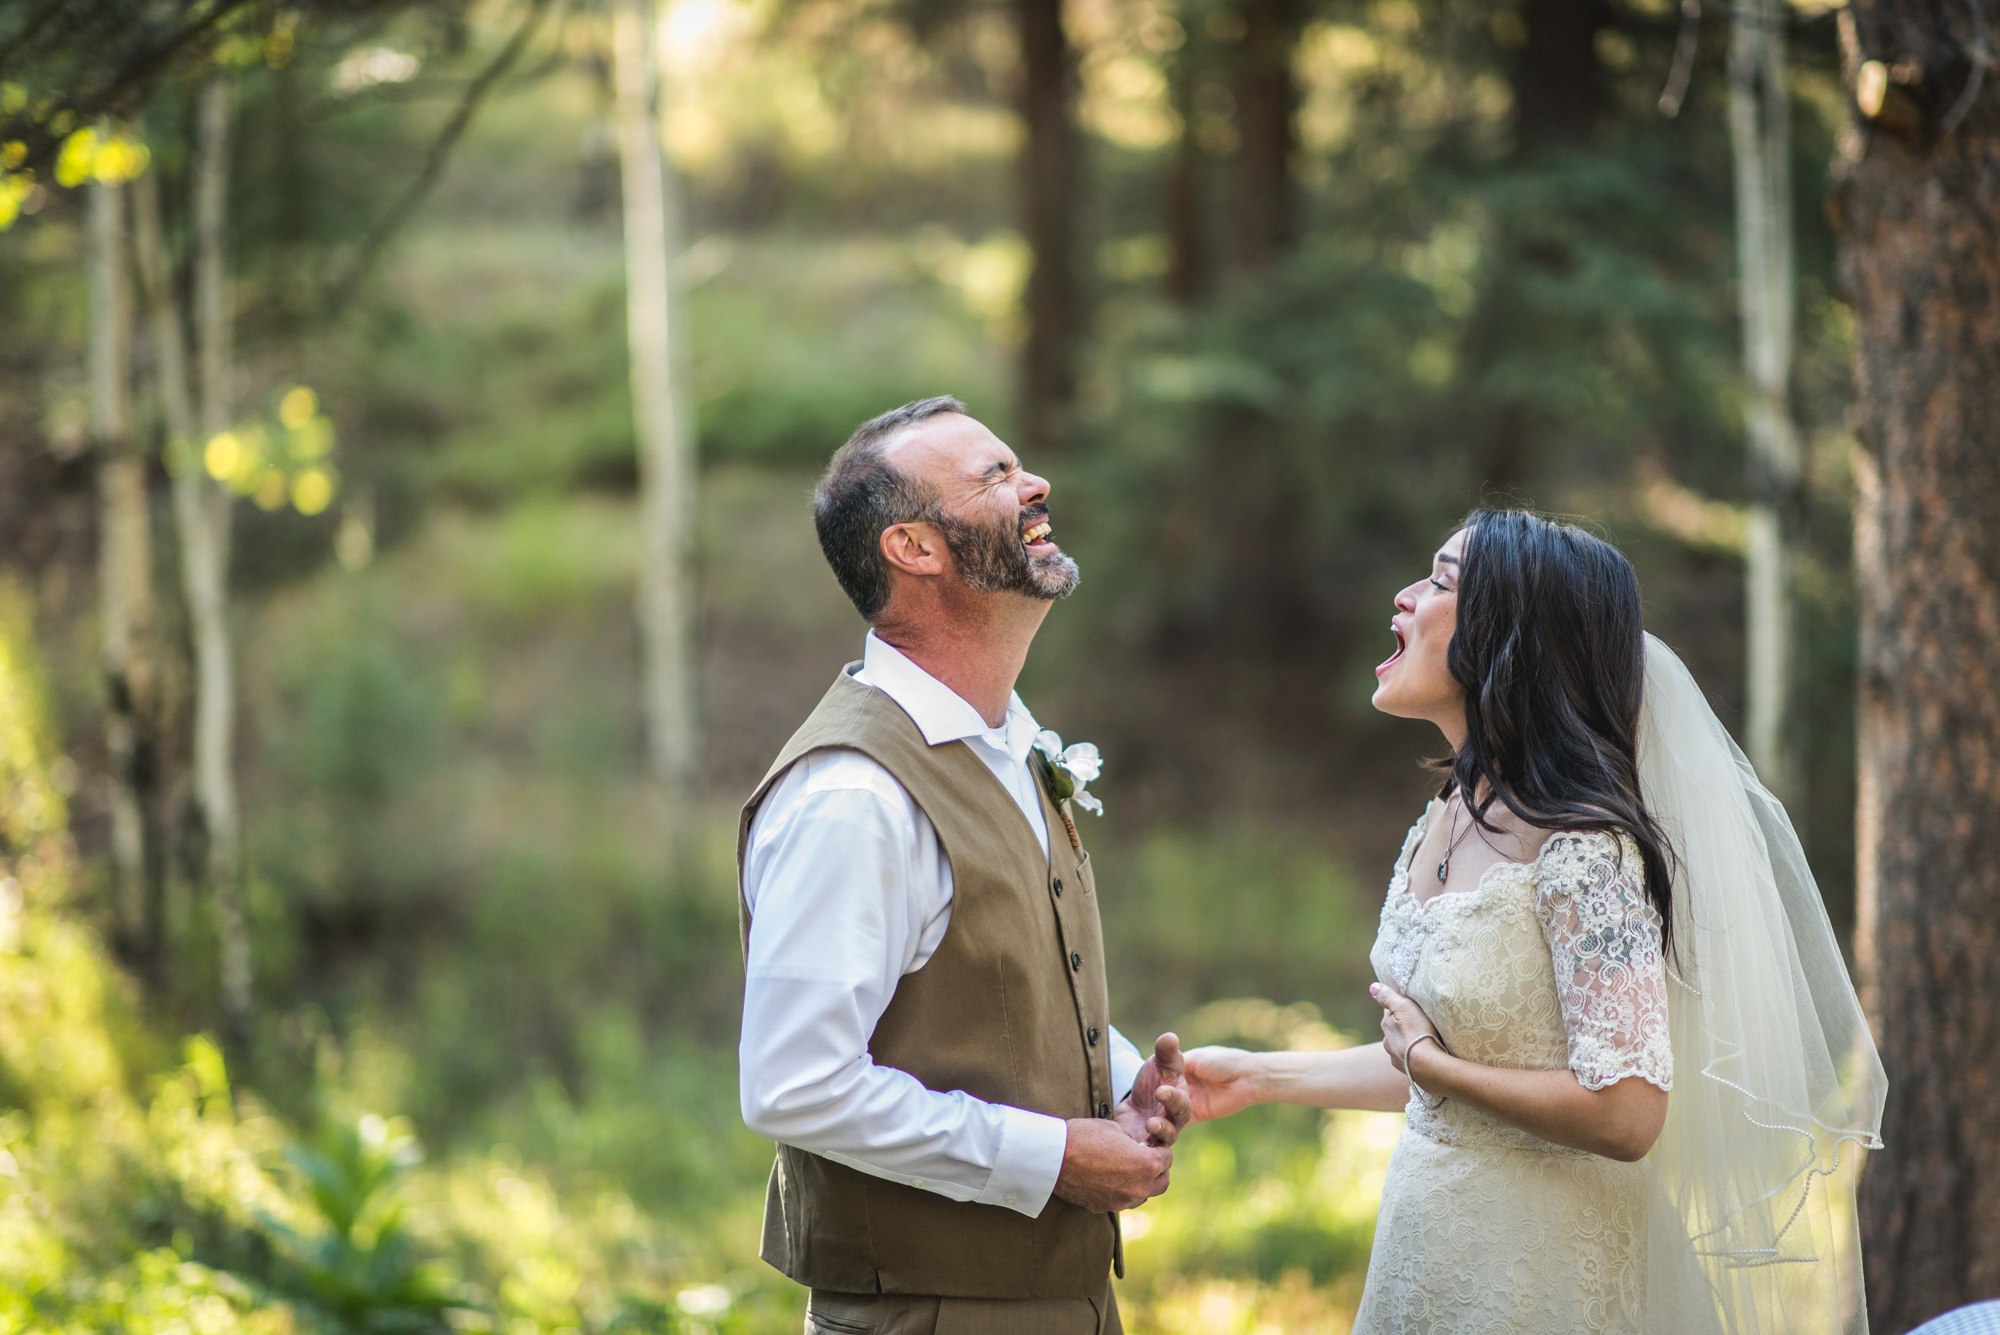 Bride and groom laugh together in the woods at their wedding